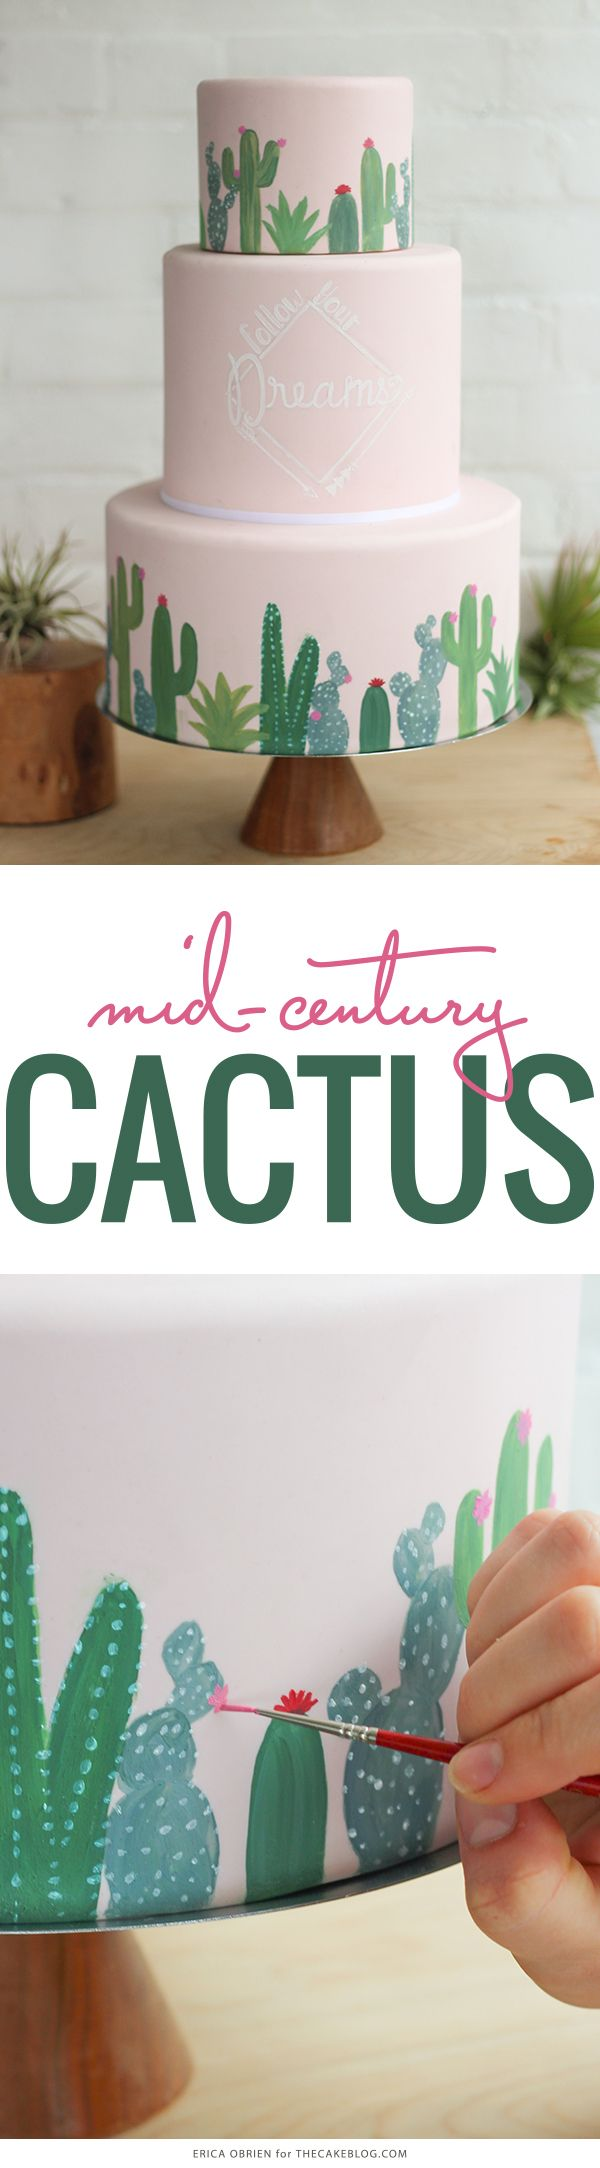 Mid-Century Cactus Cake with hand-painted details | by Erica OBrien for TheCakeBlog.com